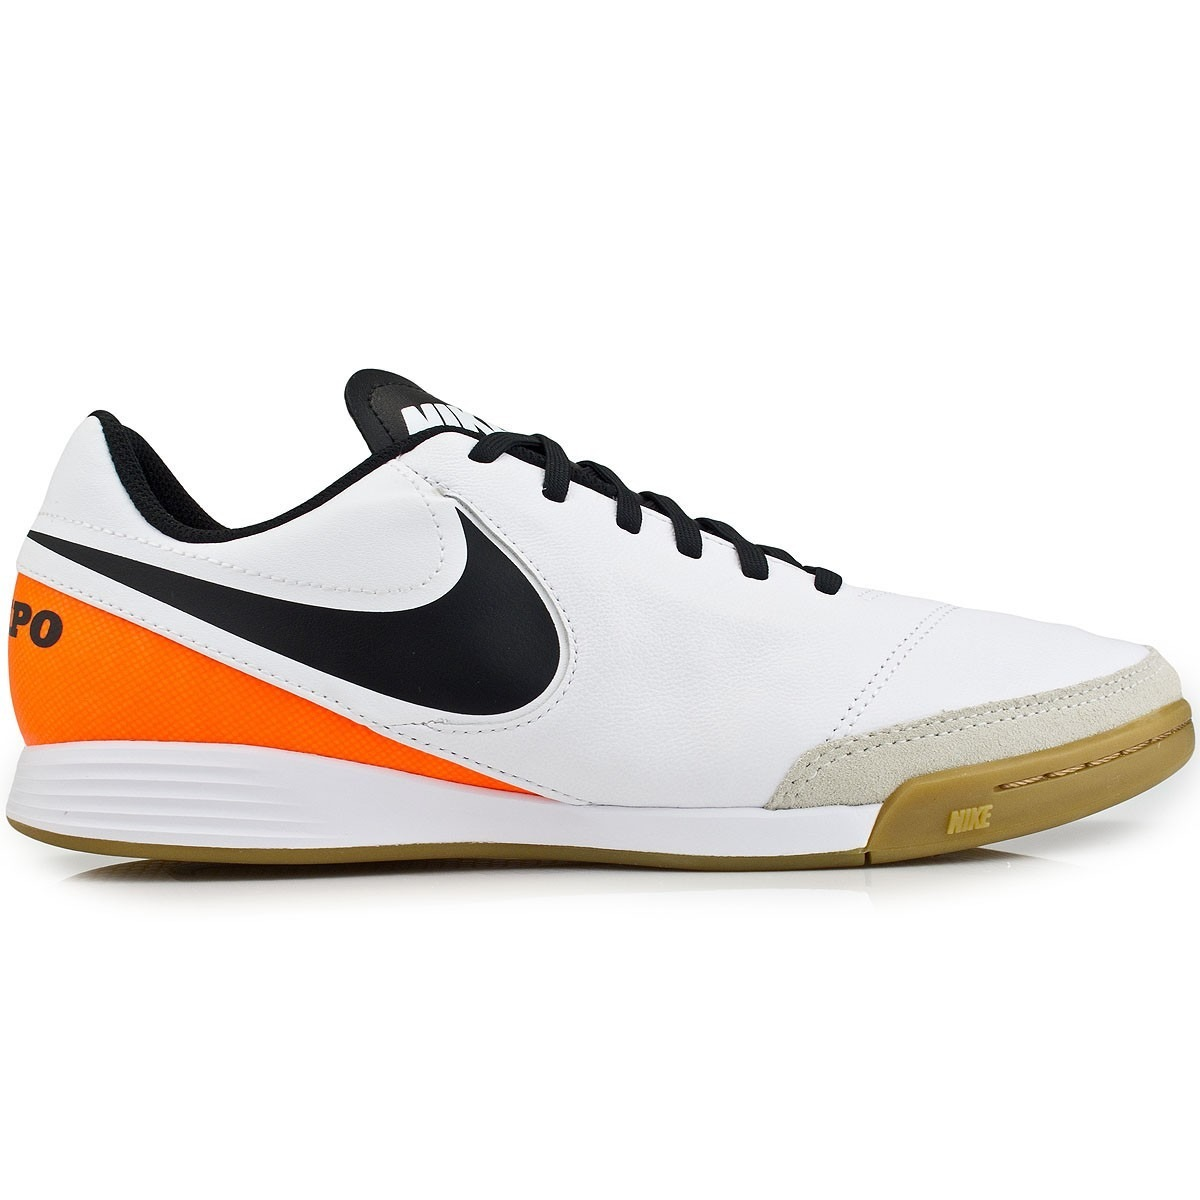 chuteira nike tiempo genio ii leather ic futsal original+nf. Carregando  zoom. 5603482e77e39